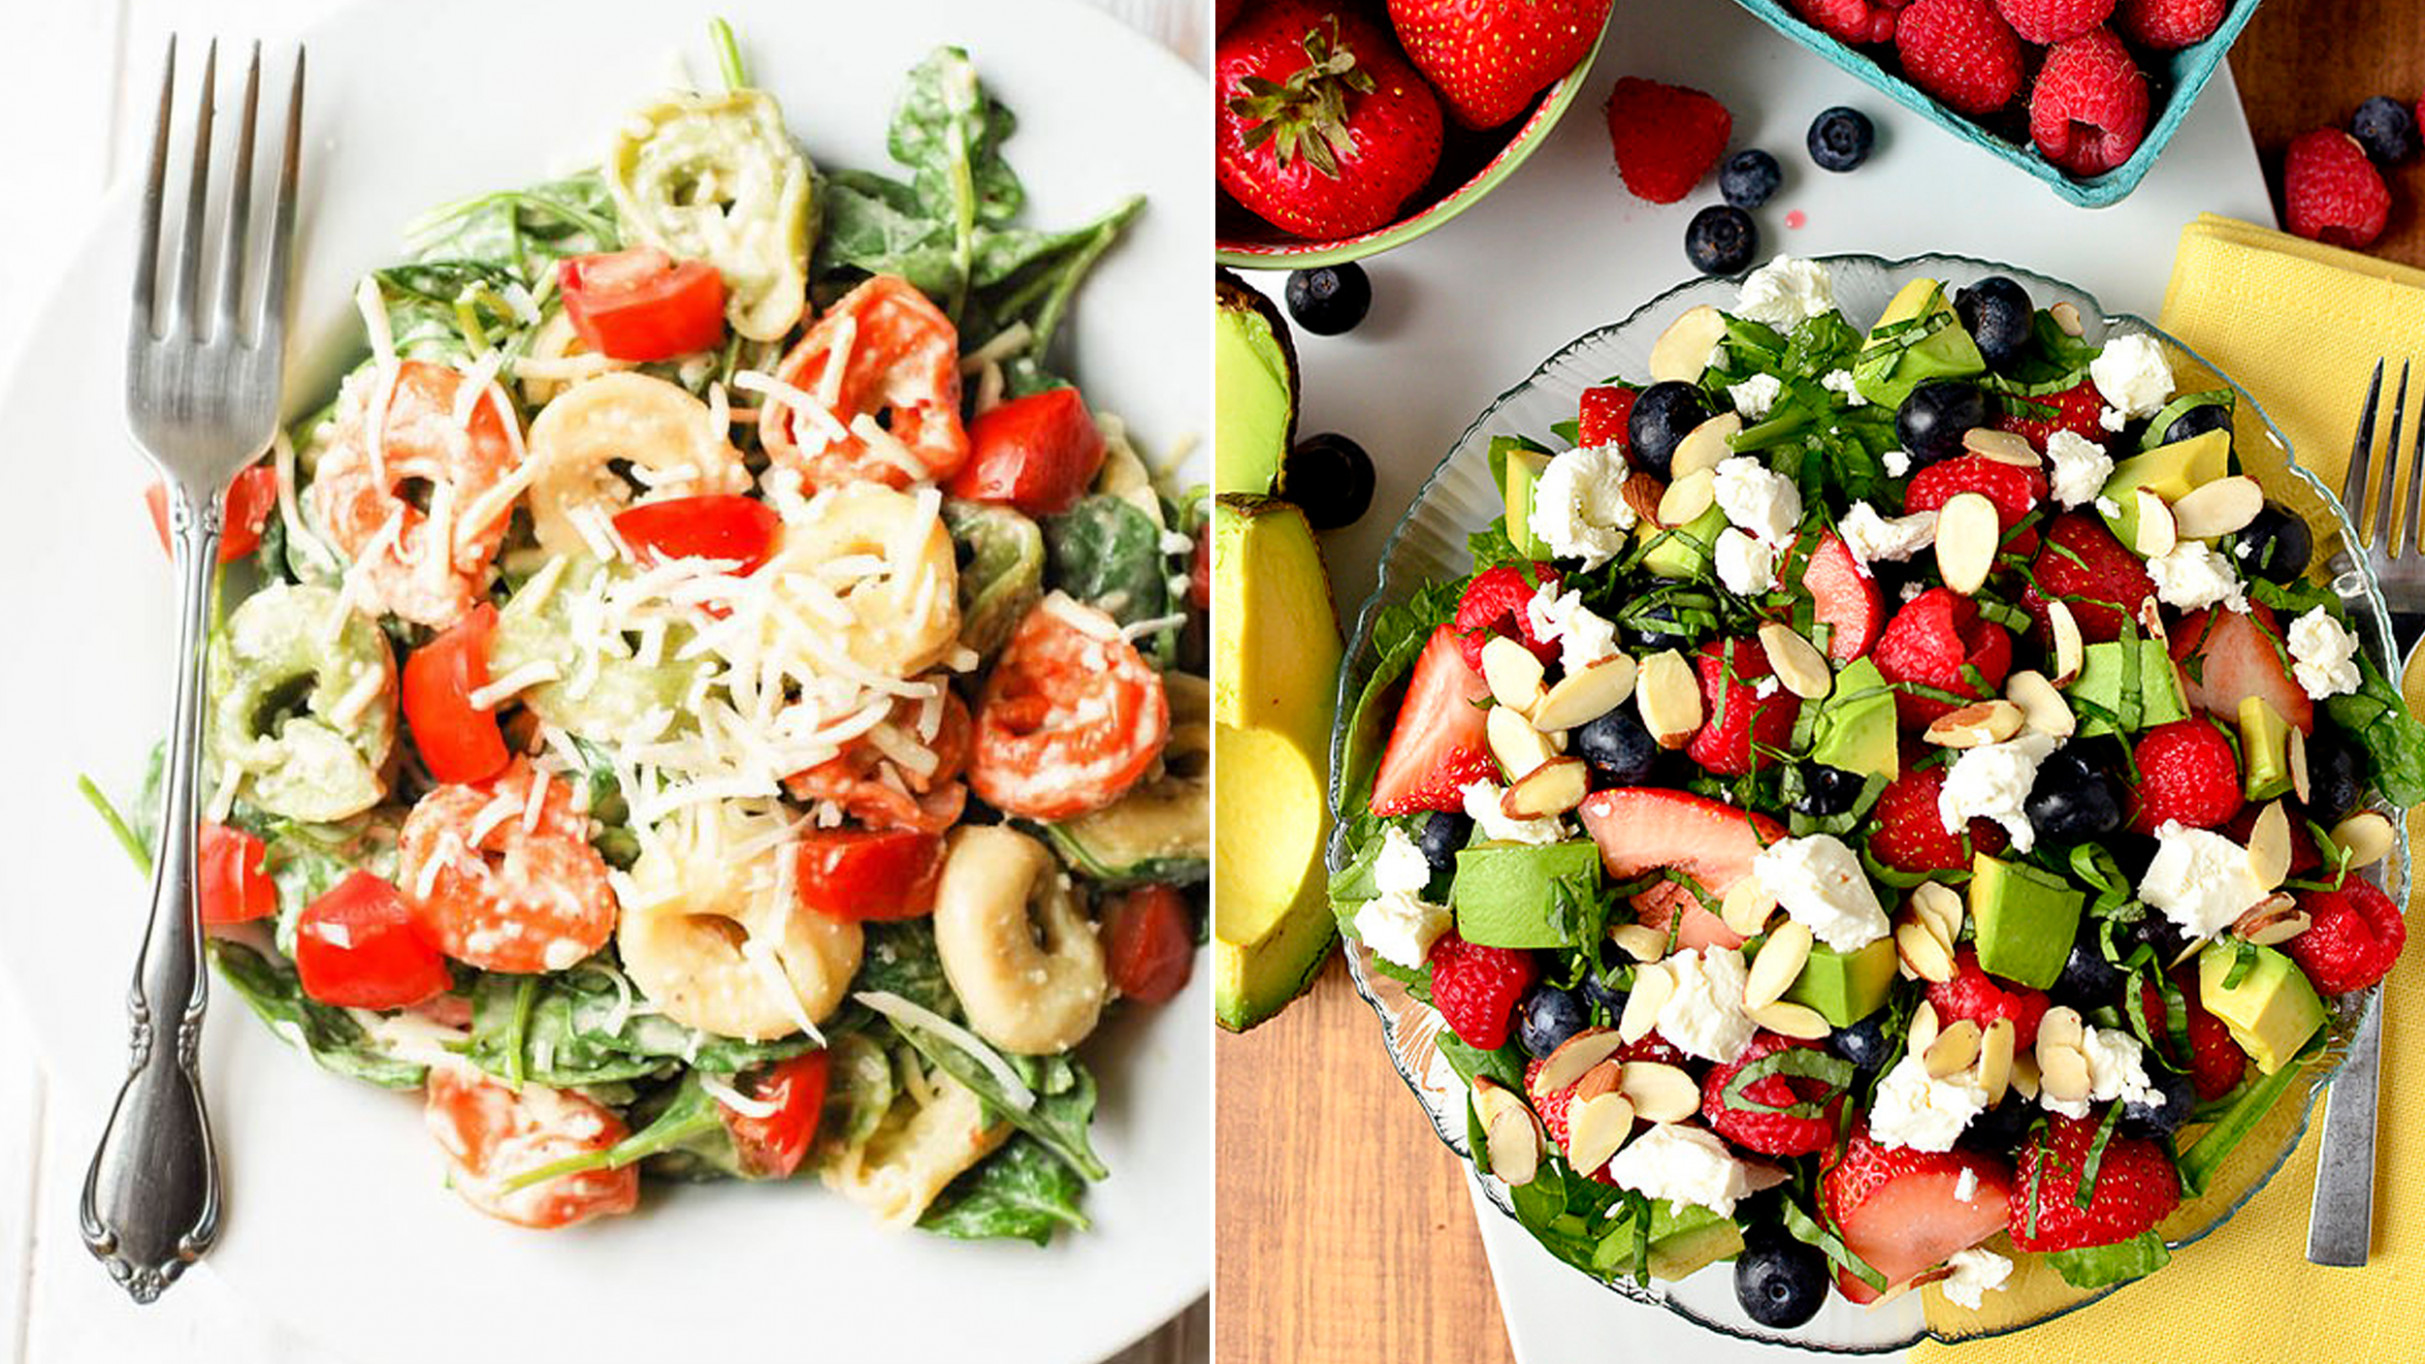 13 Pinterest-approved healthy summer salad recipes